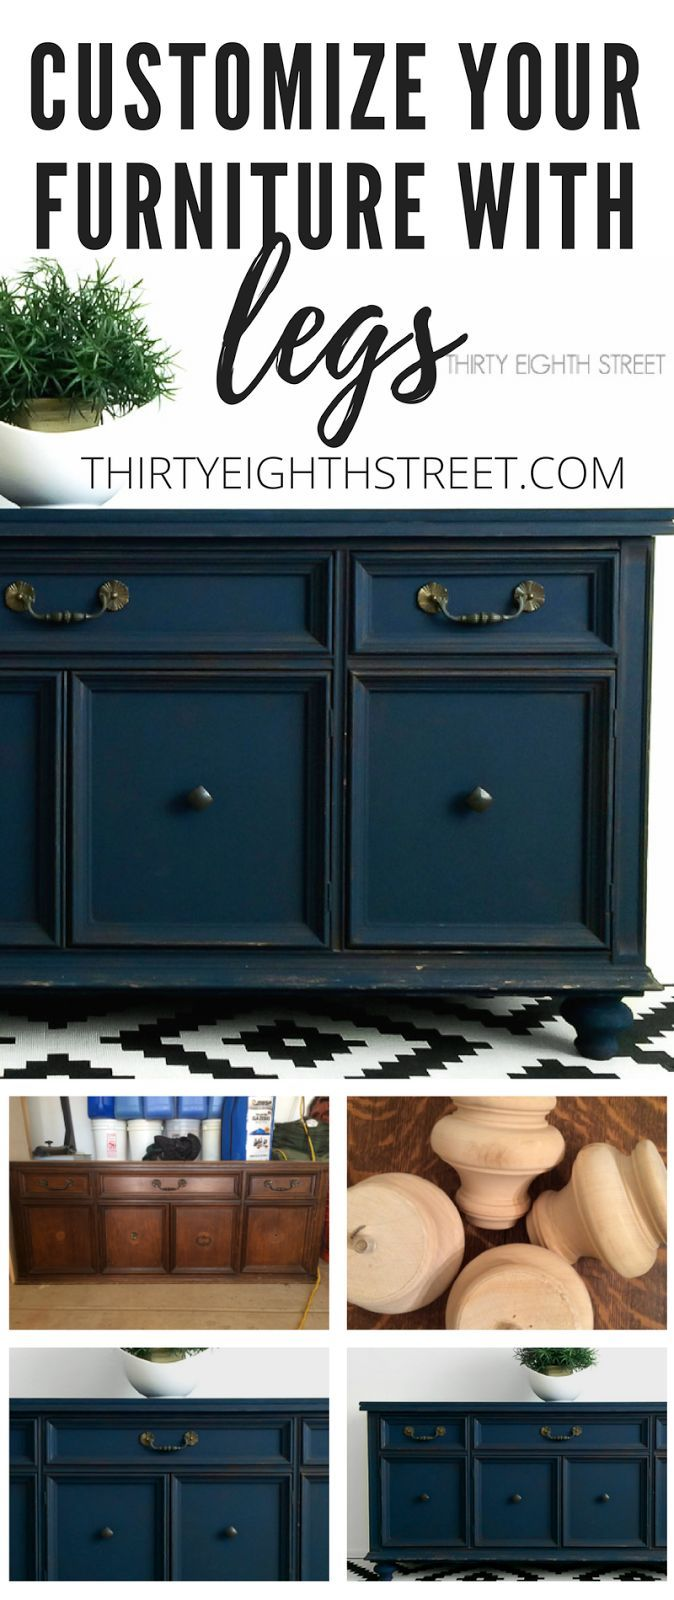 How To Add Legs To Furniture For An Easy Custom Look! Fabulous Tutorial by Thirty Eighth Street.